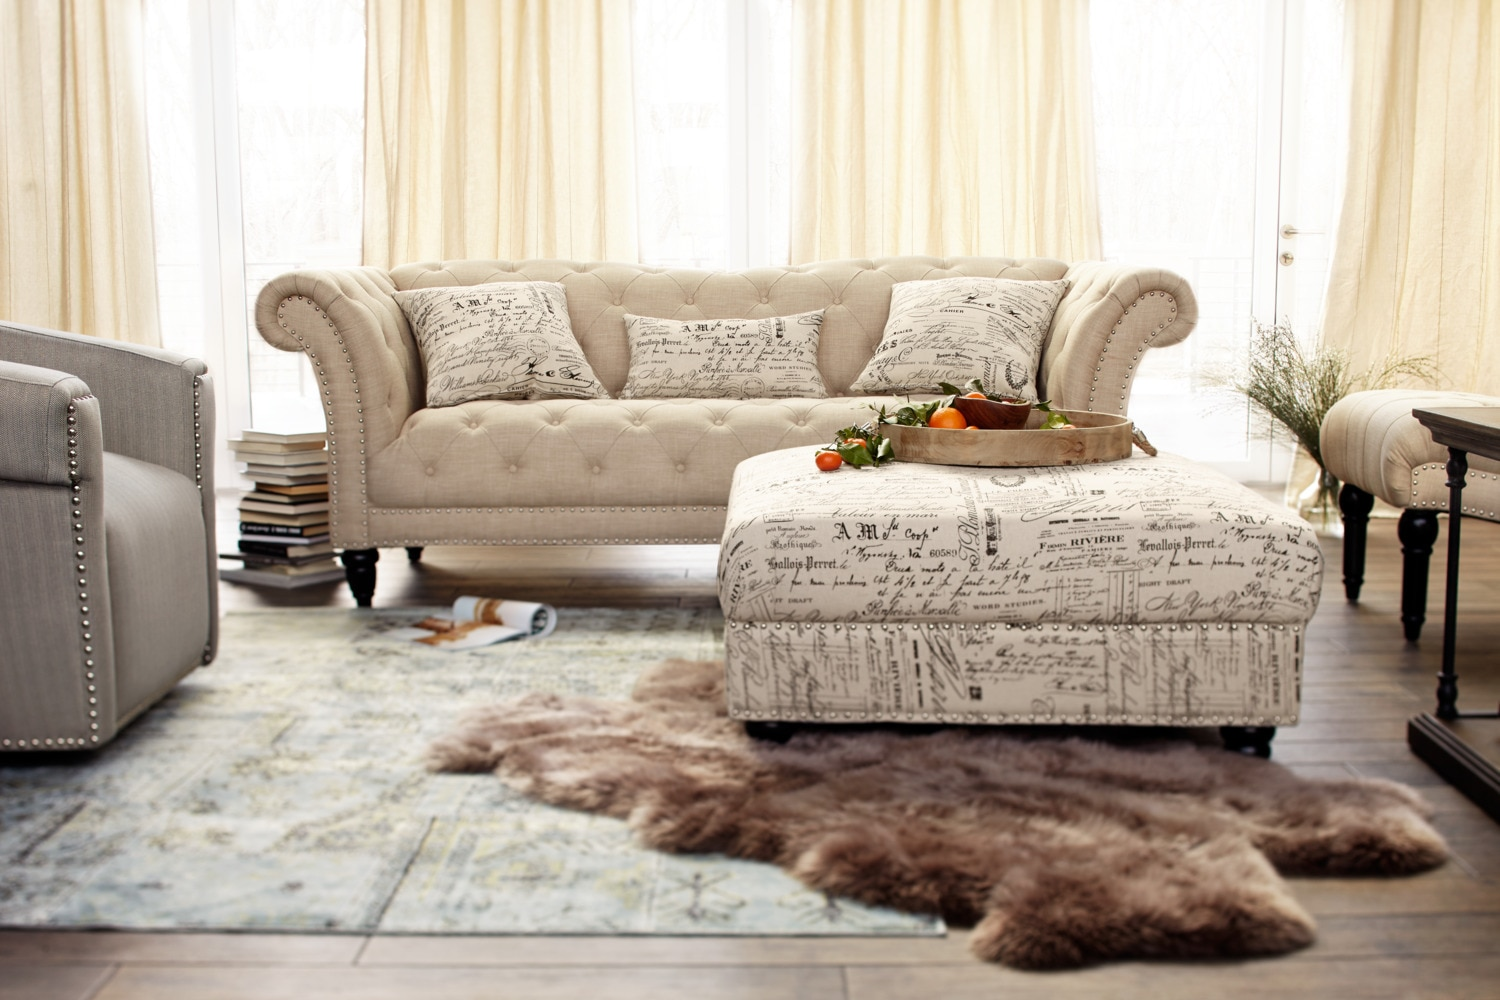 Sofas In Value City Furniture Marisol Sofa - Beige | Value City Furniture And Mattresses